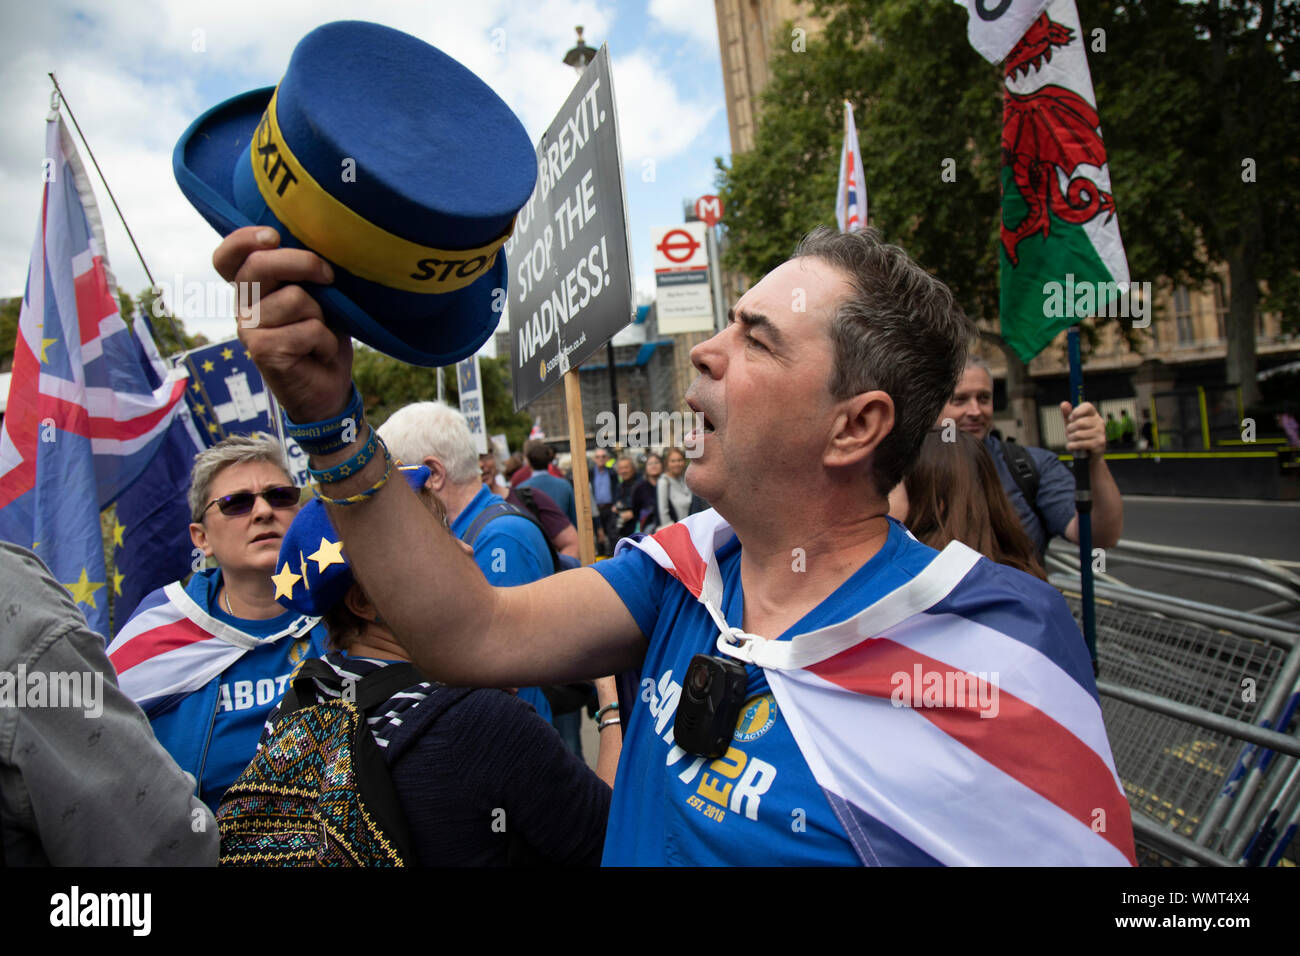 Anti Brexit protester Steve Bray has his hat taken and thrown away by Leave protesters in Westminster on the day that Parliament reconvenes after summer recess to debate and vote on a bill to prevent the UK leaving the EU without a deal at the end of October, on 3rd September 2019 in London, England, United Kingdom. Today Prime Minister Boris Johnson will face a showdown after he threatened rebel Conservative MPs who vote against him with deselection, and vowed to aim for a snap general election if MPs succeed in a bid to take control of parliamentary proceedings to allow them to discuss legis - Stock Photo